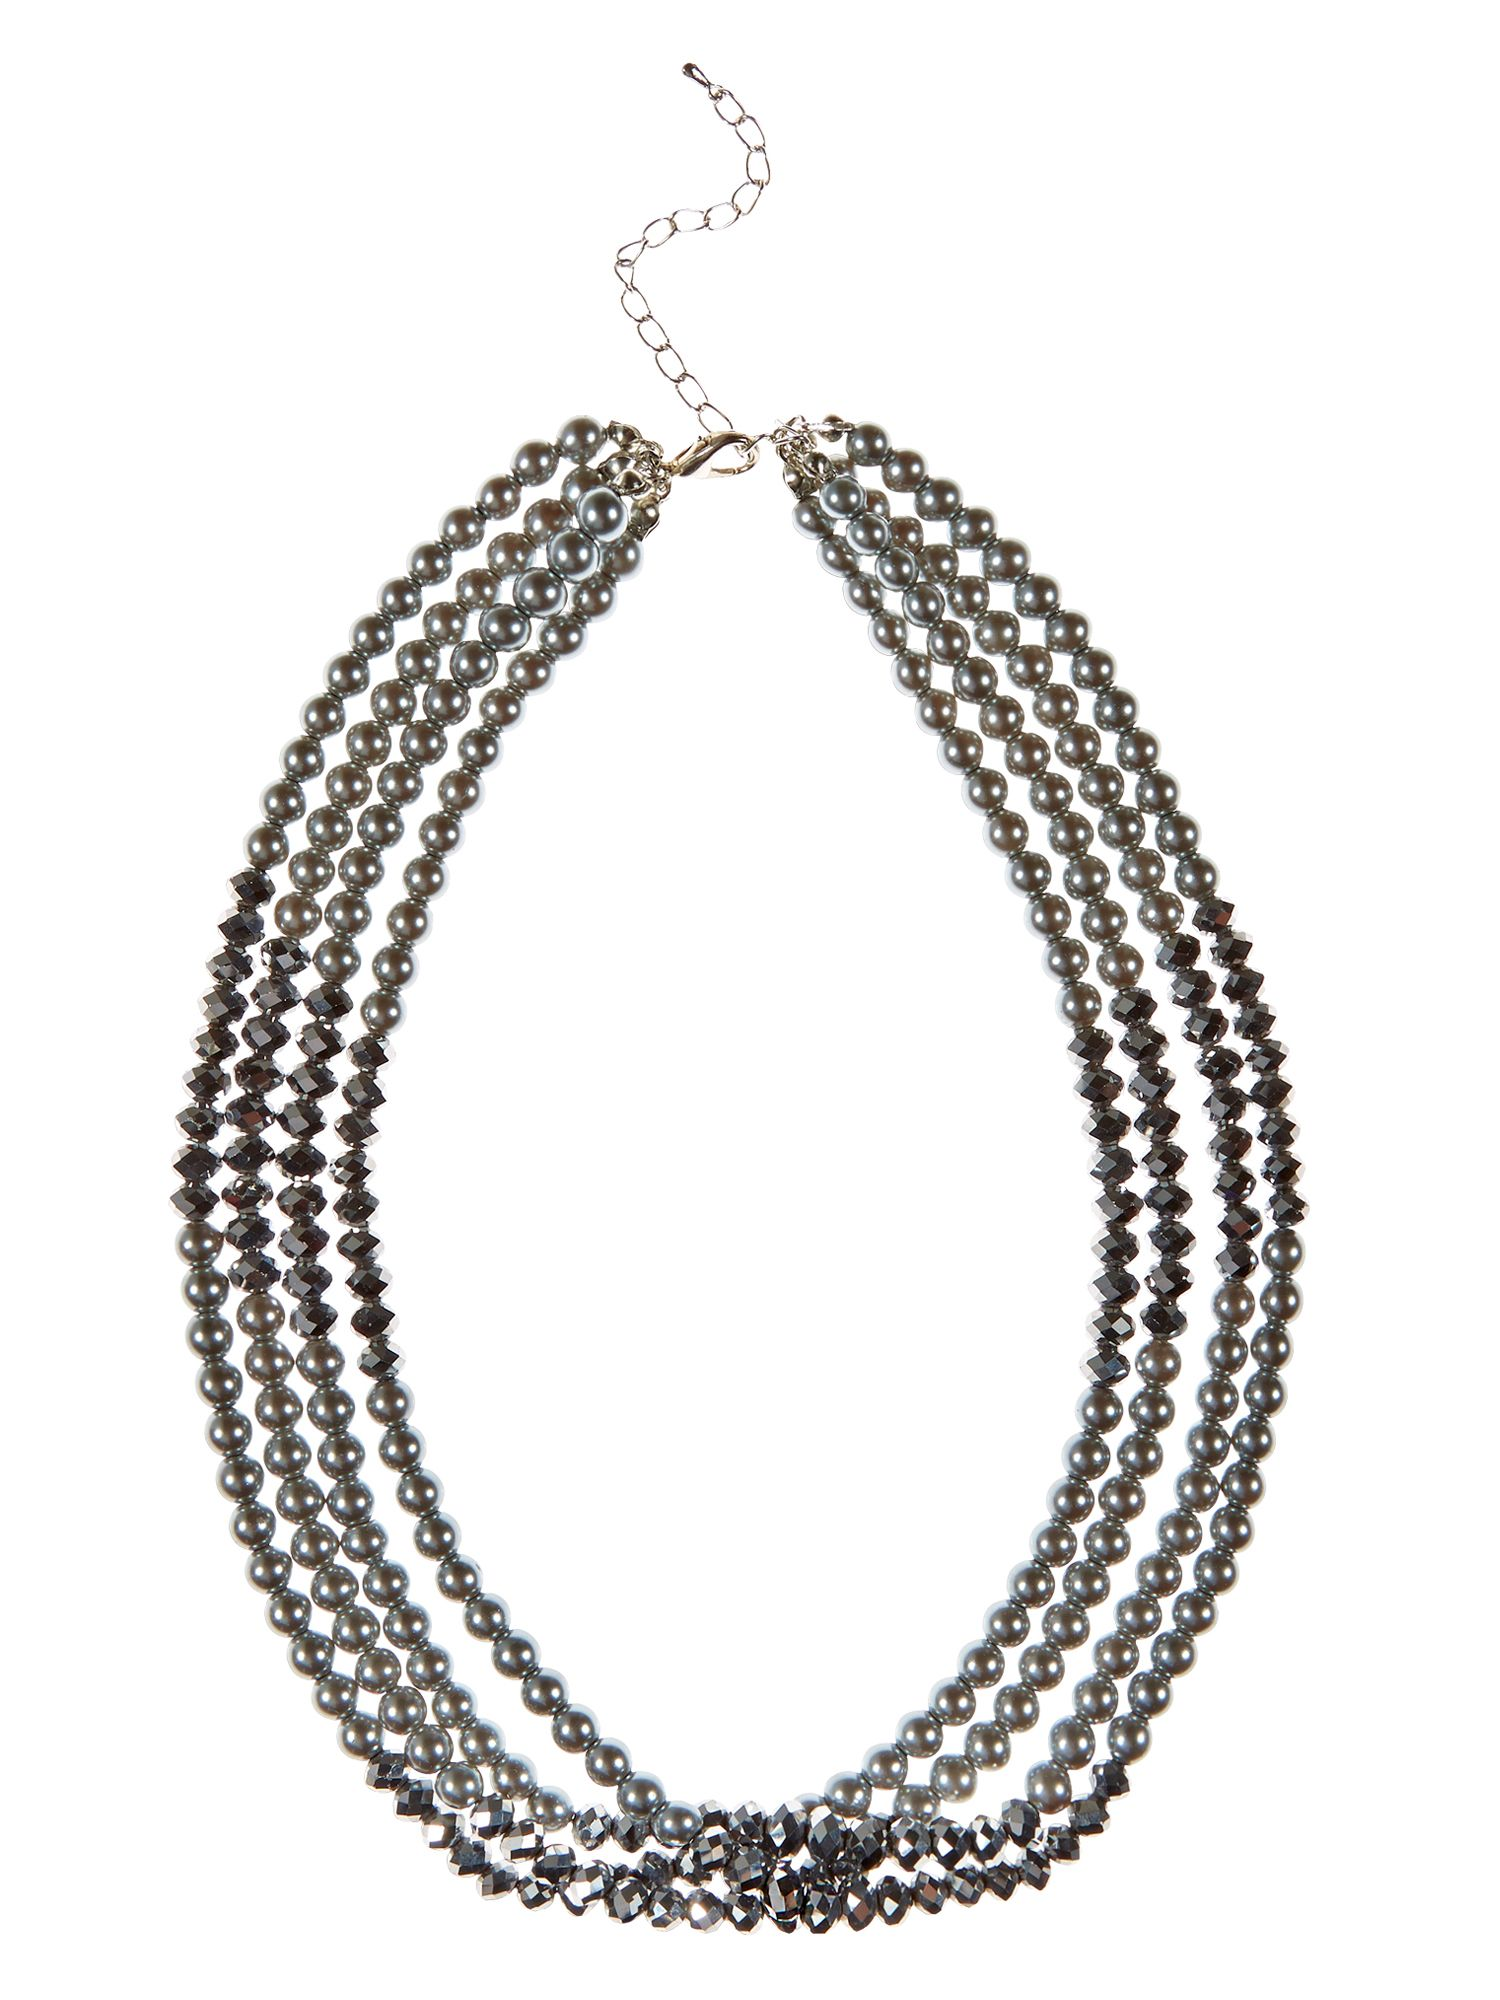 Platinum bead necklace